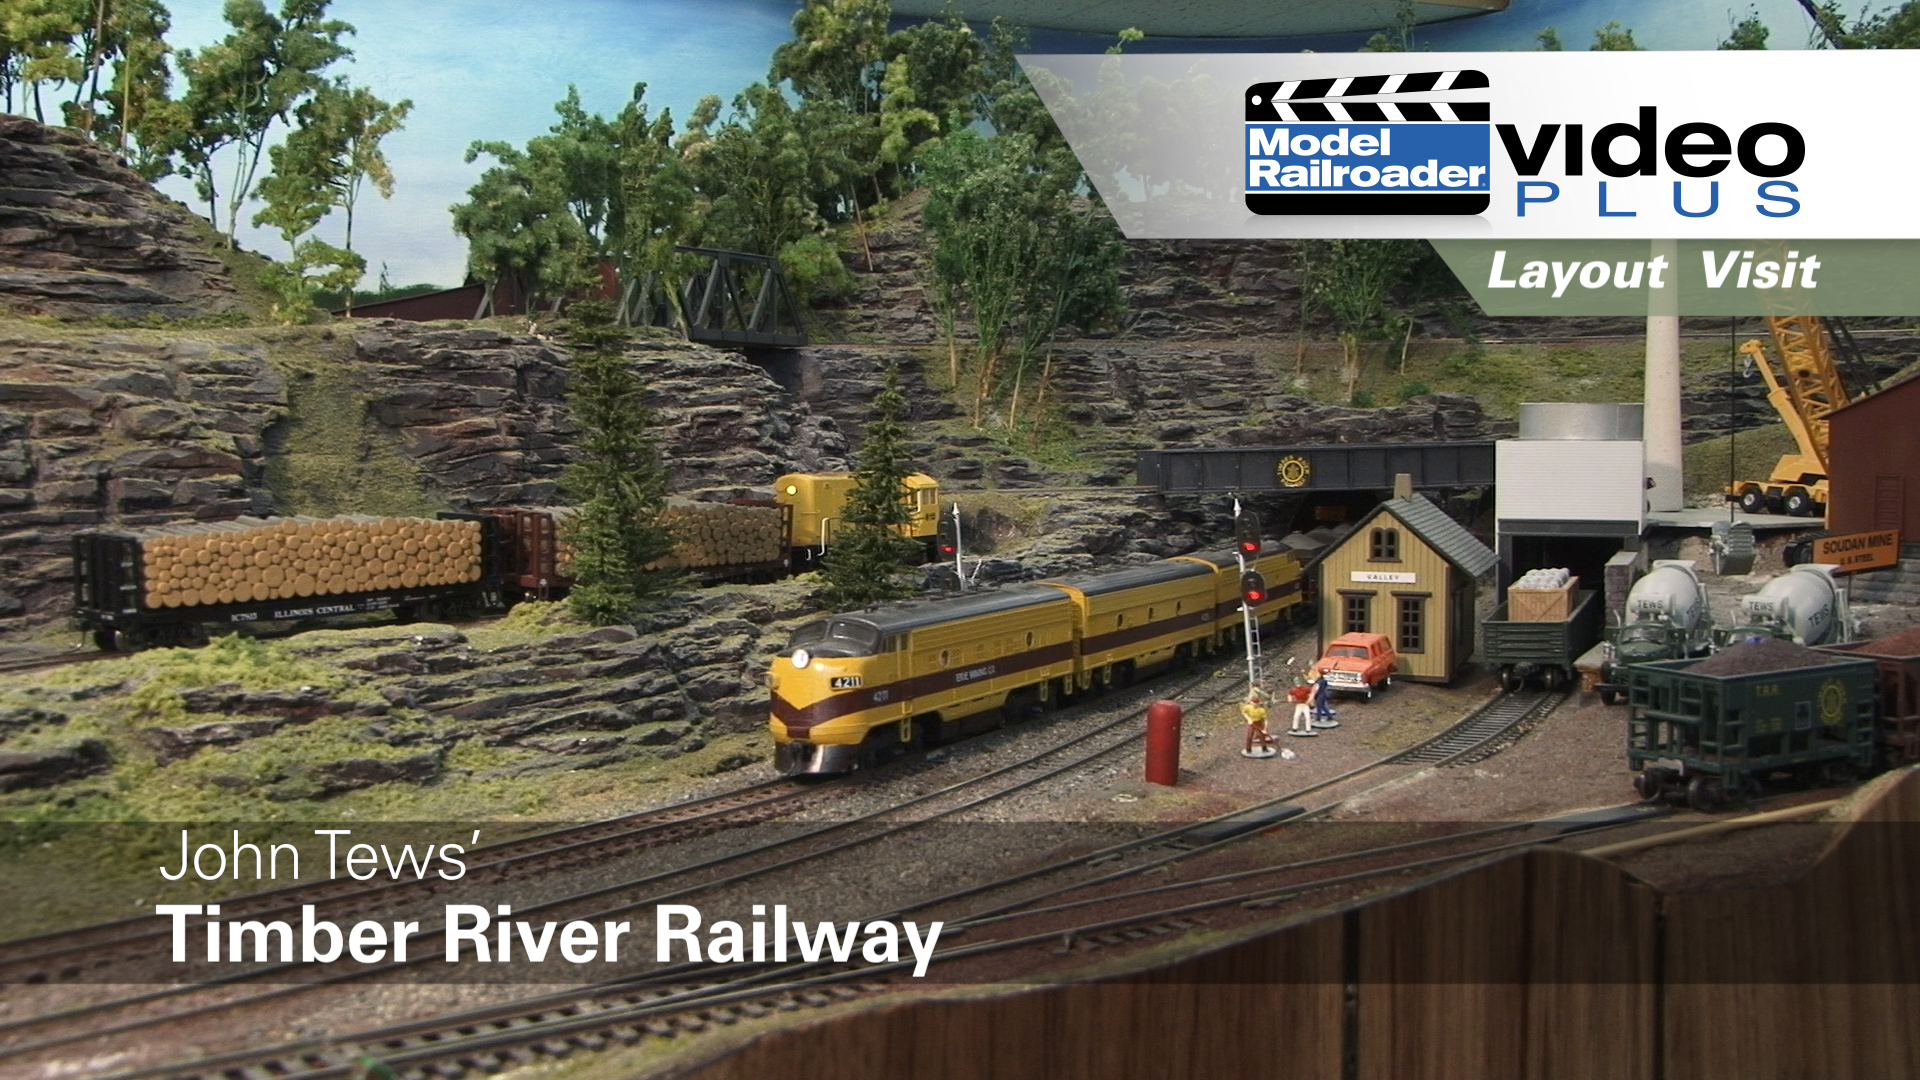 Model Railroad Wiring Tips All Kind Of Diagrams A Railway Mrvp Layout Visit John Tews Timber River In Ho Scale Modelrailroadervideoplus Com